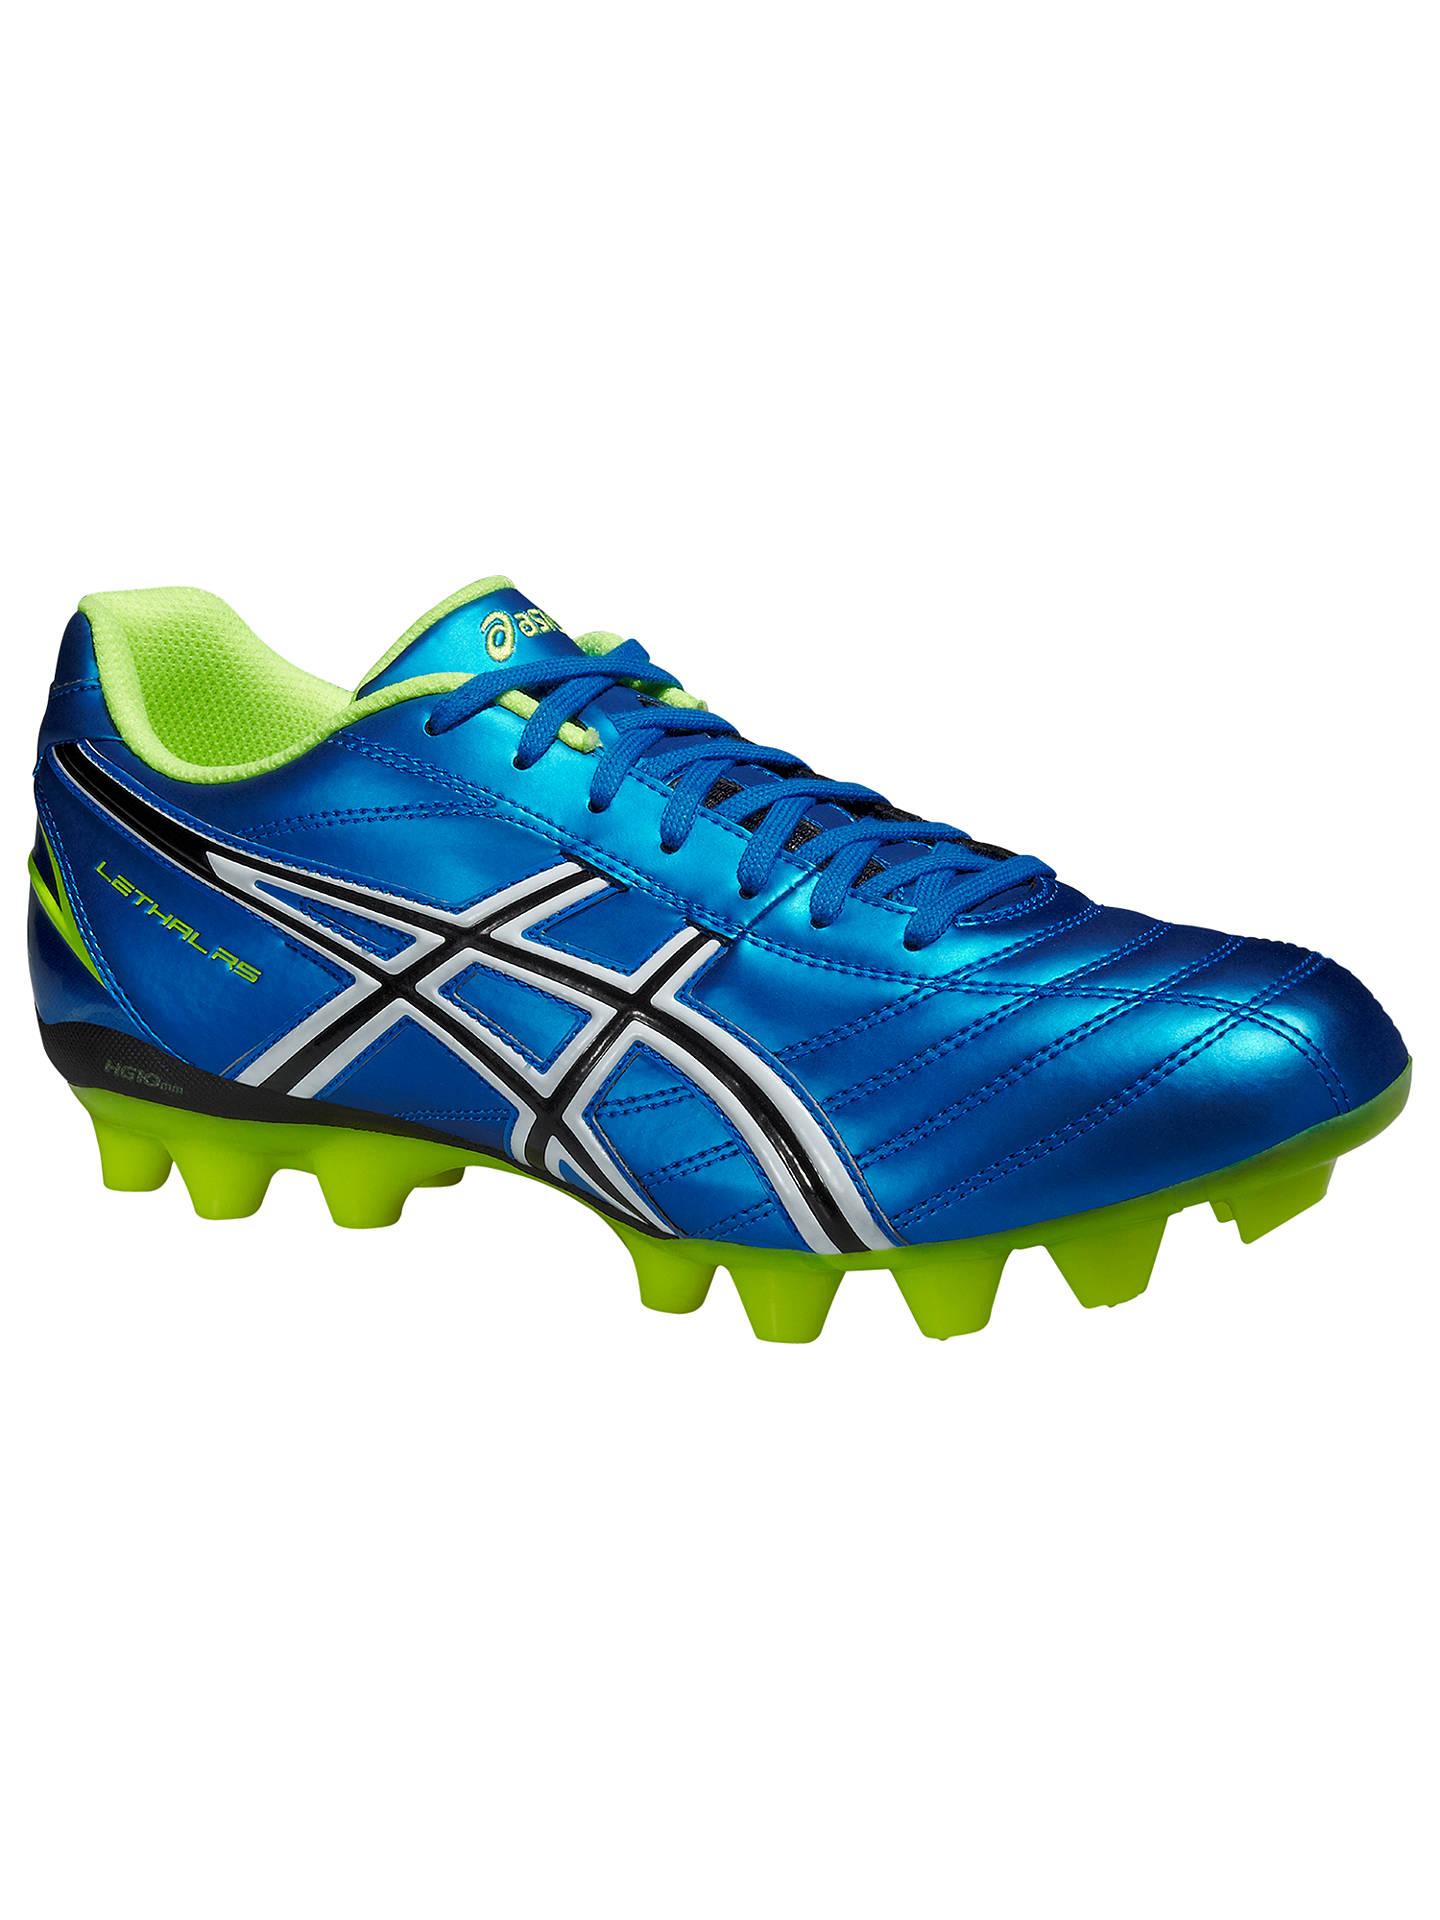 b0dac91bd469 Buy Asics Lethal RS Men s Football Boots